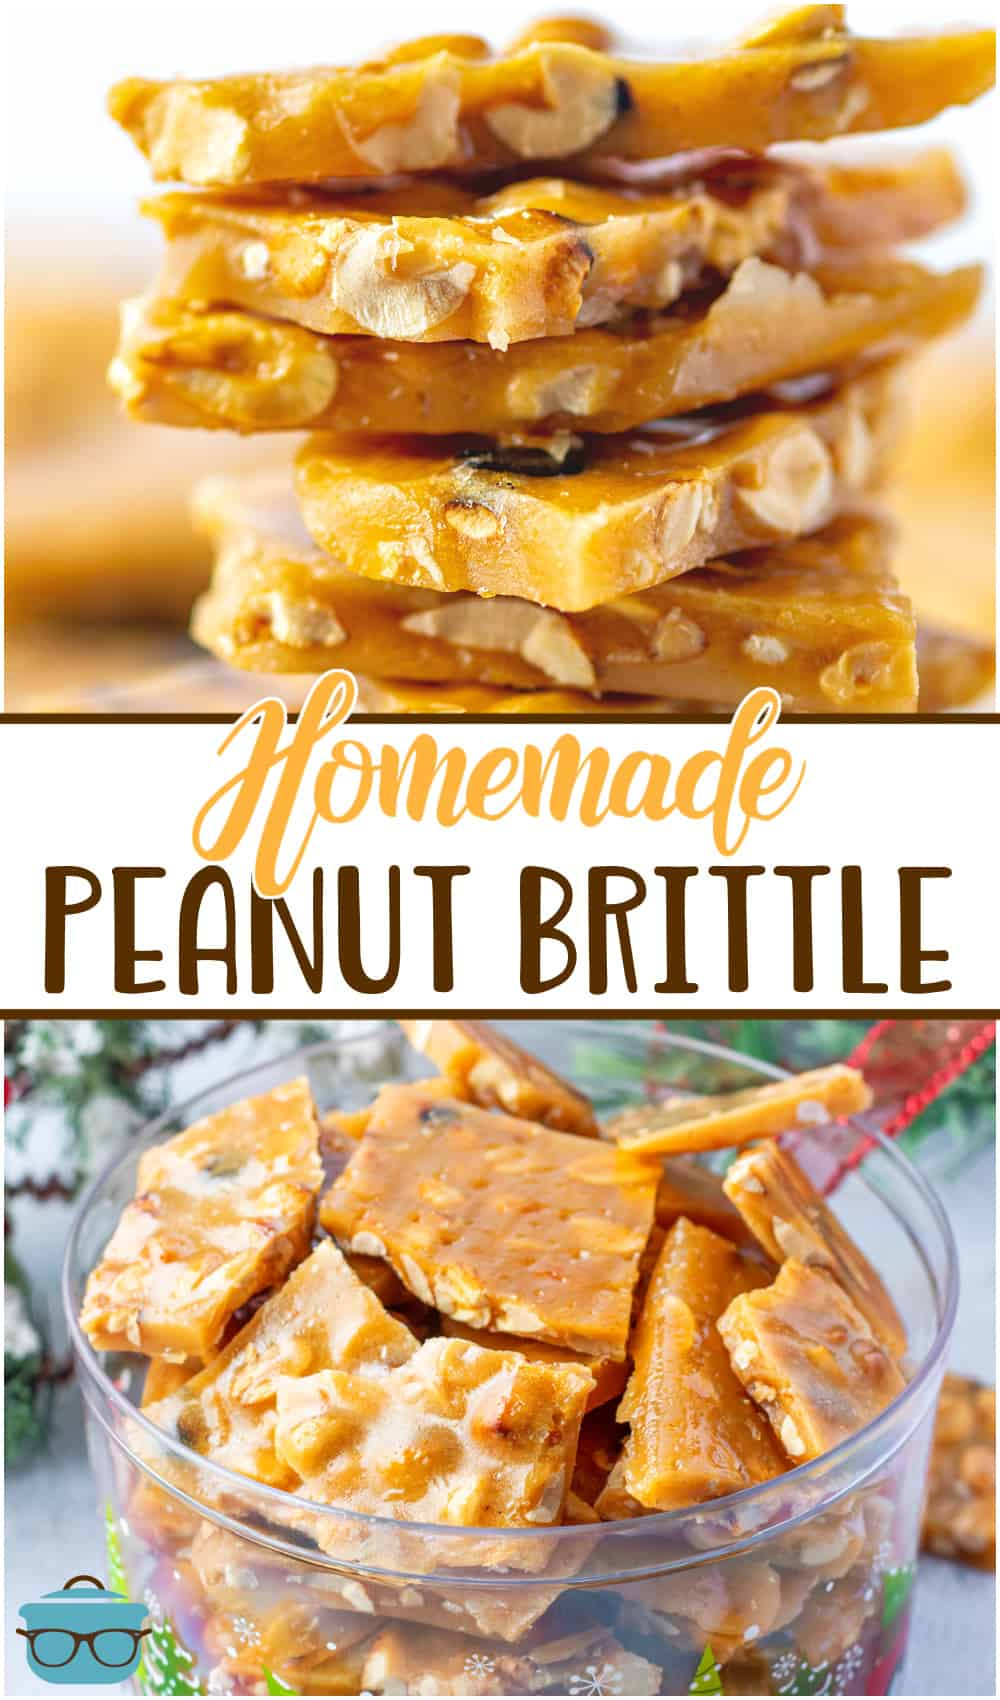 This recipe for Easy Homemade Peanut Brittle is a delicious, crisp, buttery candy filled with peanuts that is perfect for gift giving!